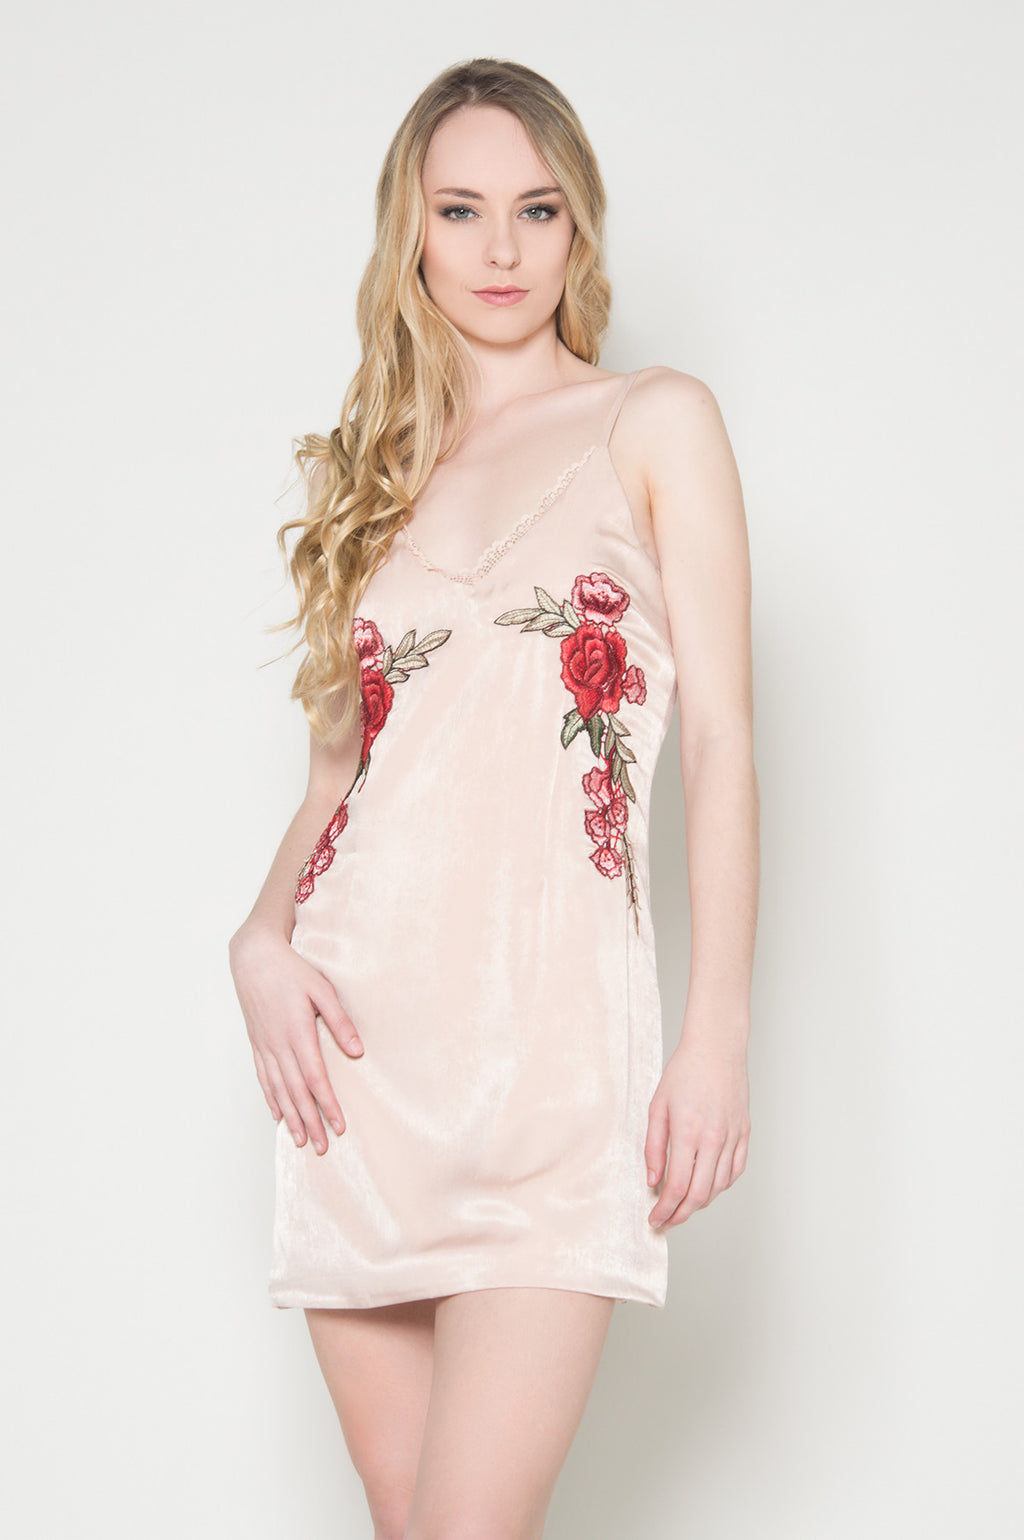 Bed of roses slip dress fashionable classy trendy dresses for the summer